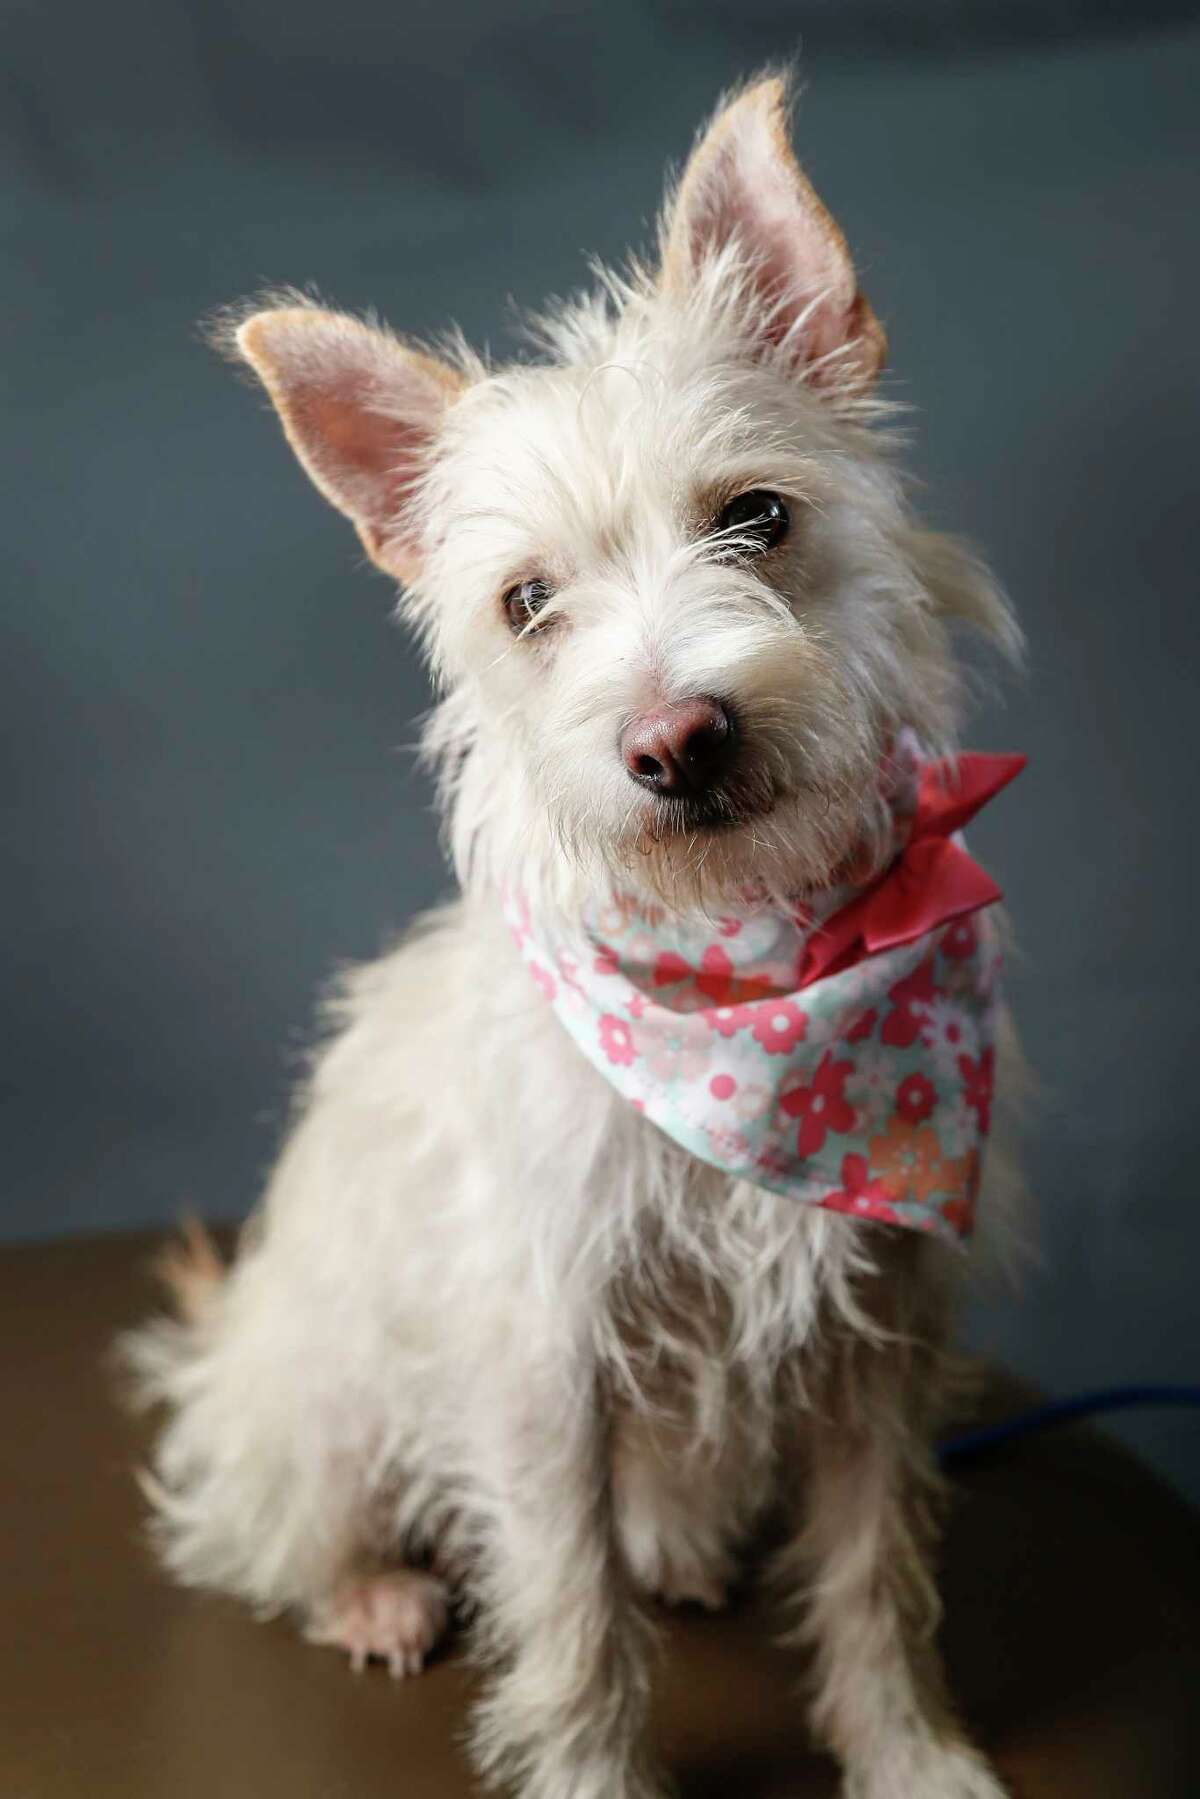 Widget is a 2-year-old, female, Cairn Terrier mix available for adoption at the BARC Animal Shelter, in Houston. (Animal ID: A1640097) Photographed Tuesday, July 16, 2019. Widget is a happy-go lucky dog, who likes treats and pets.